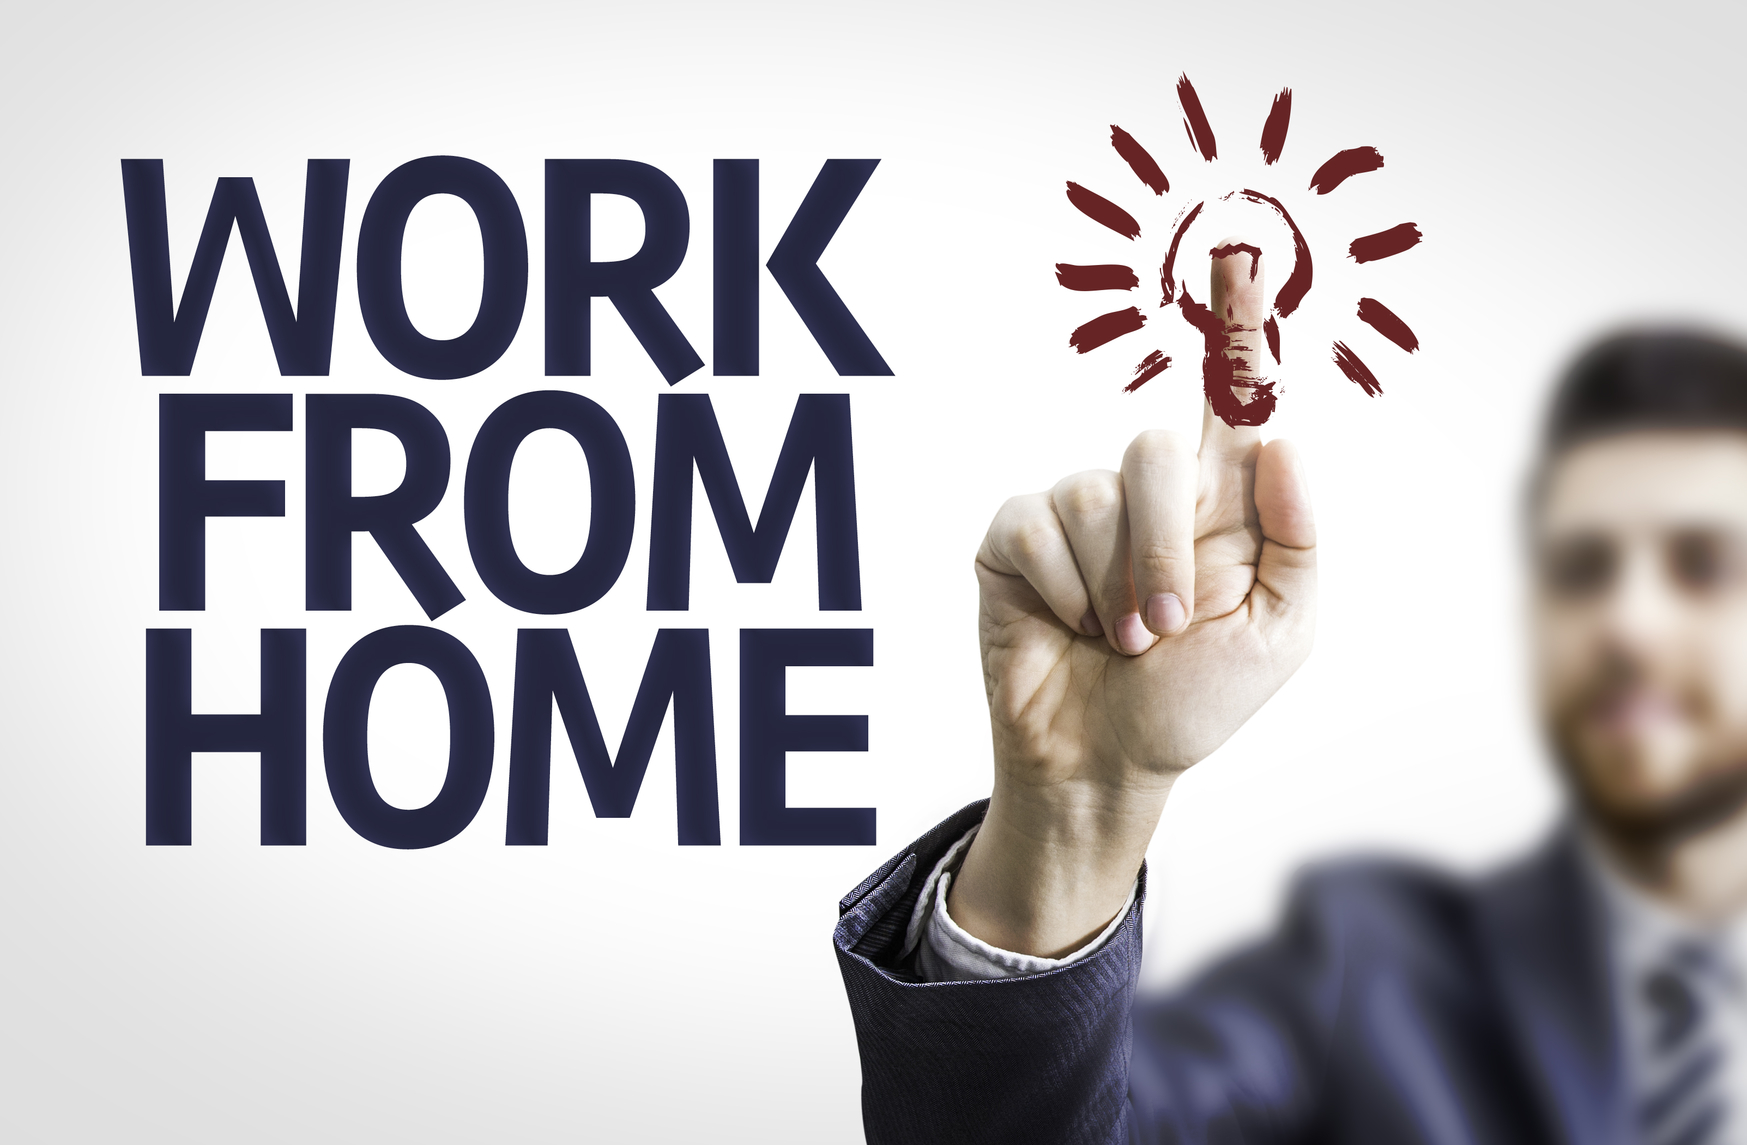 Best work from home online jobs Archives - Great New Business Ideas